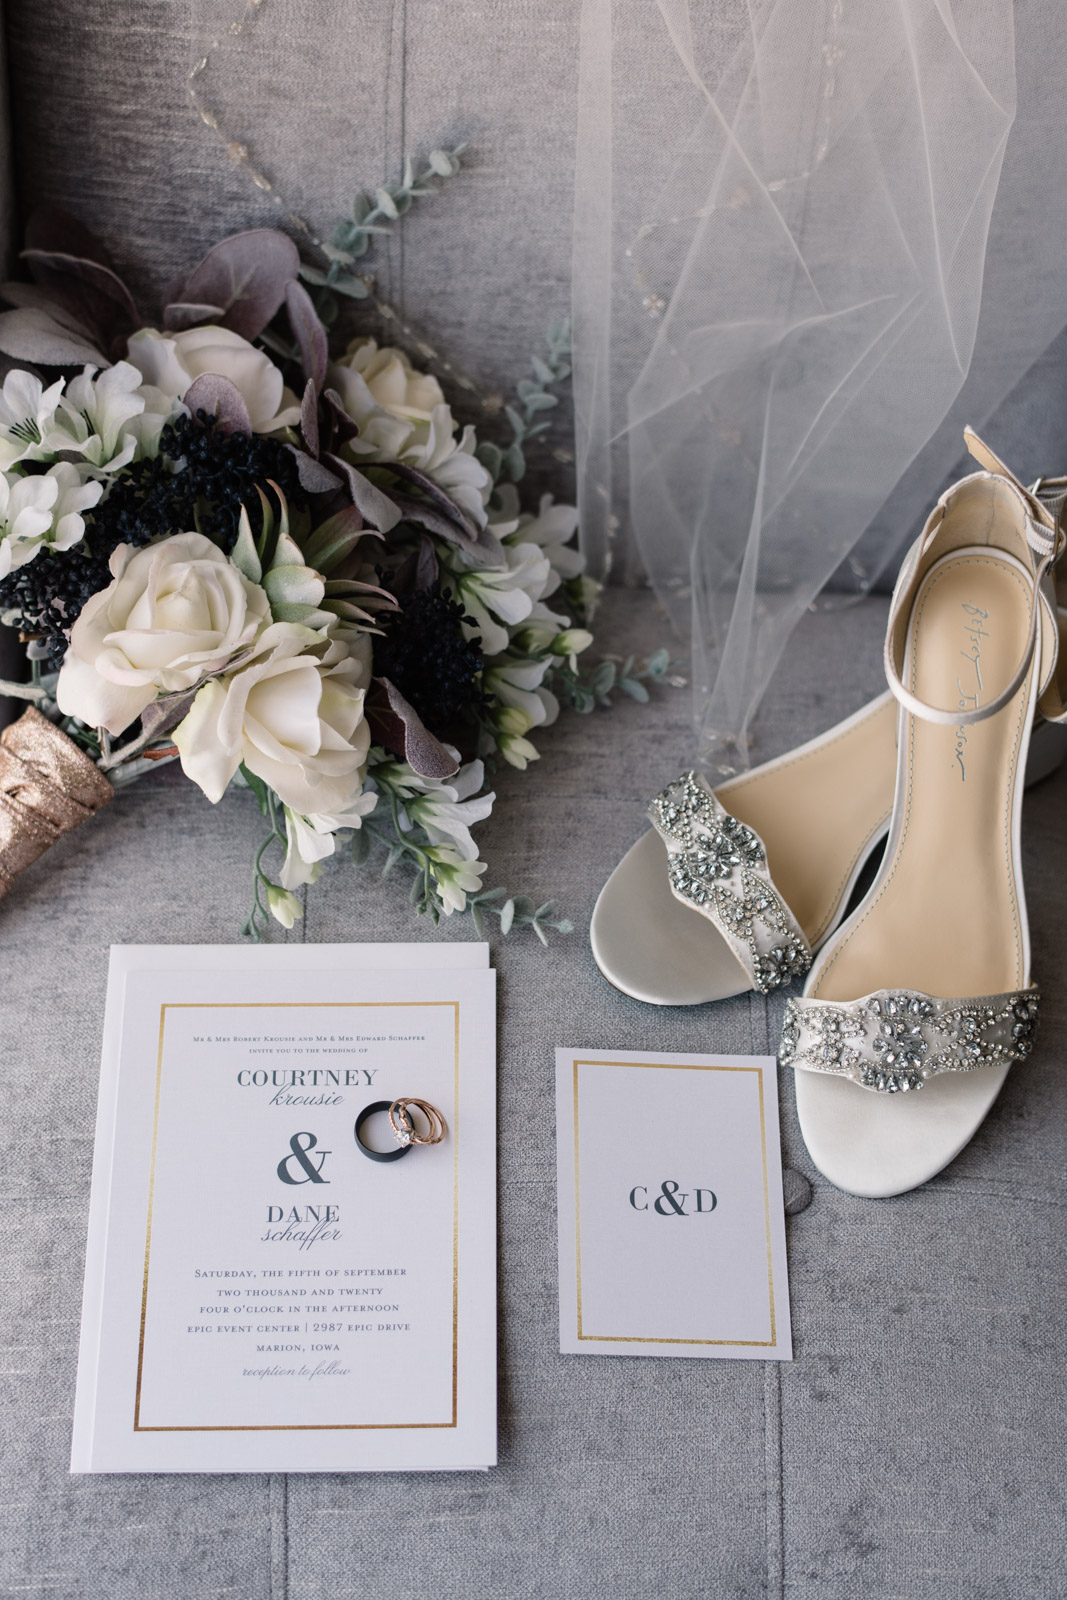 wedding shoes bouquet invitations and veil on chair